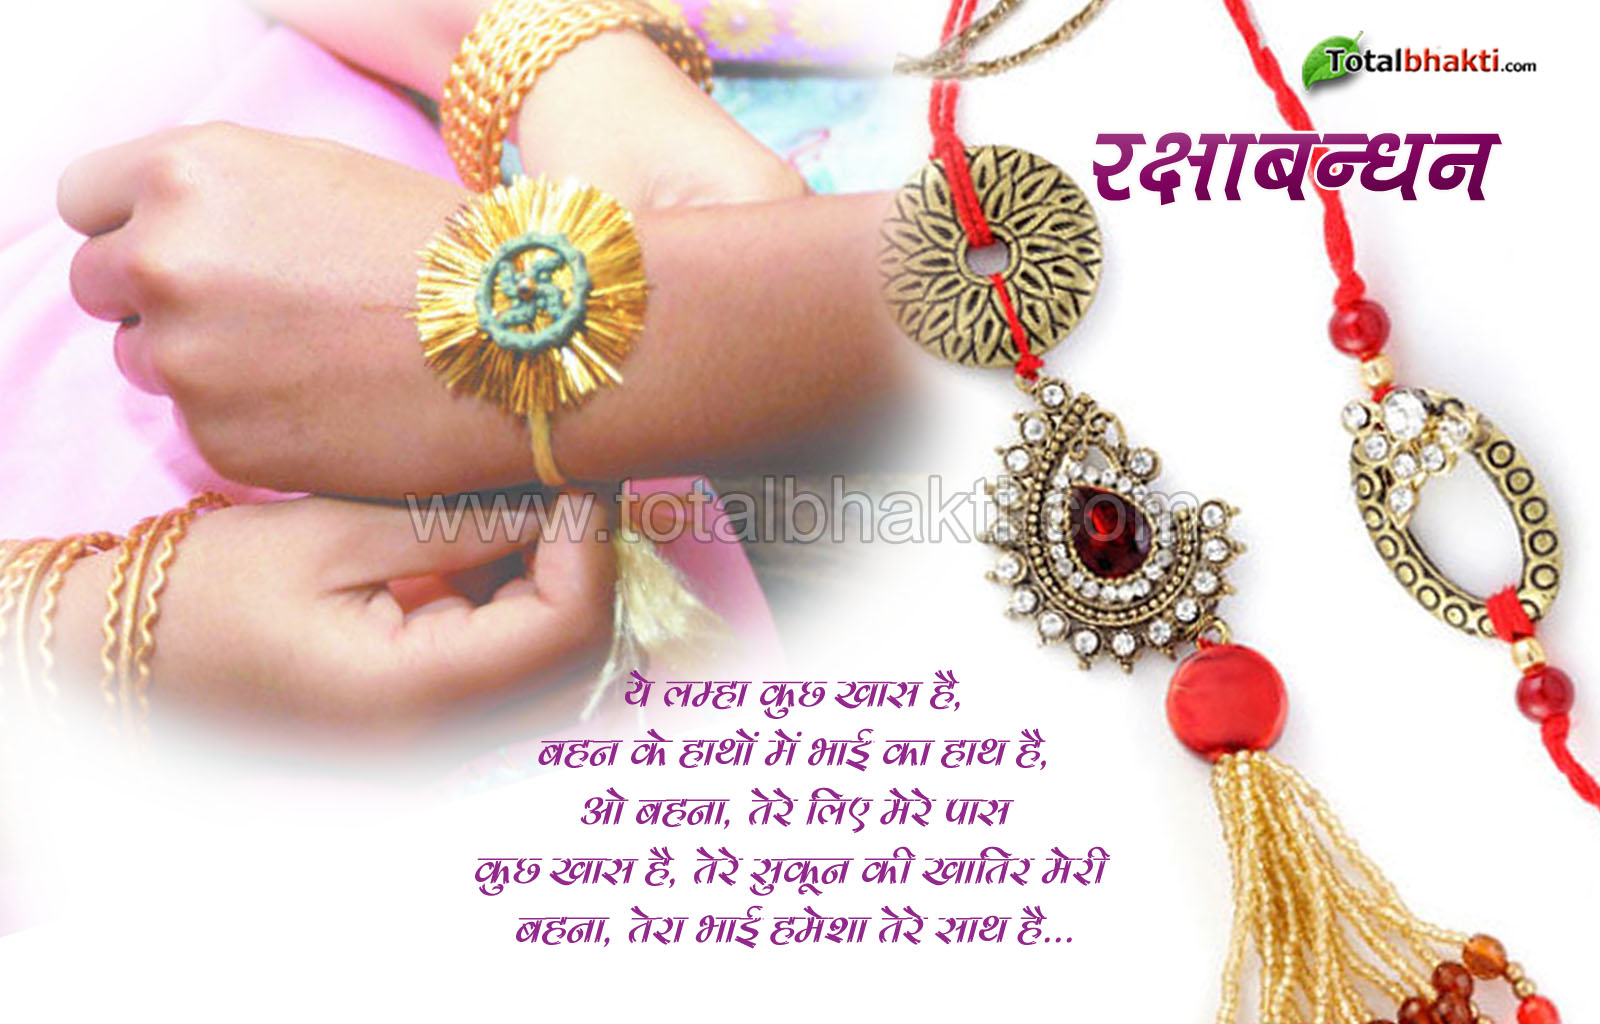 best raksha bandhan 2016 images hd hd photos raksha bandhan hd pictures